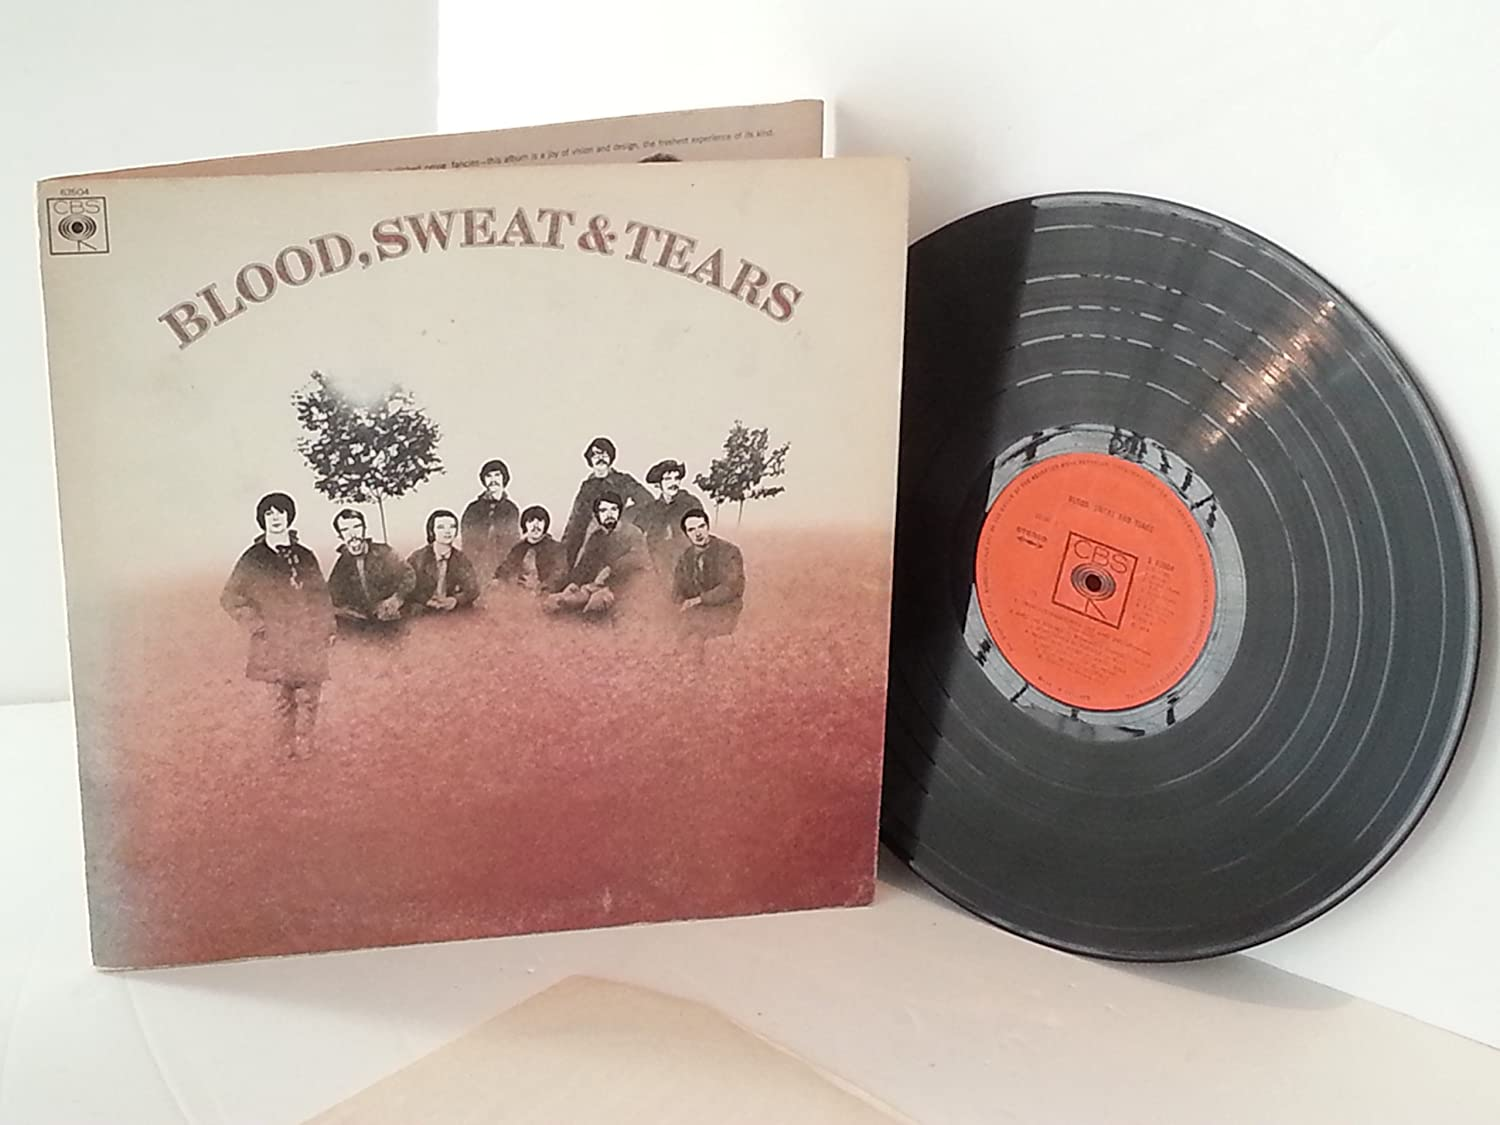 Blood Sweat & Tears BLOOD SWEAT & TEARS. First UK pressing on the ...